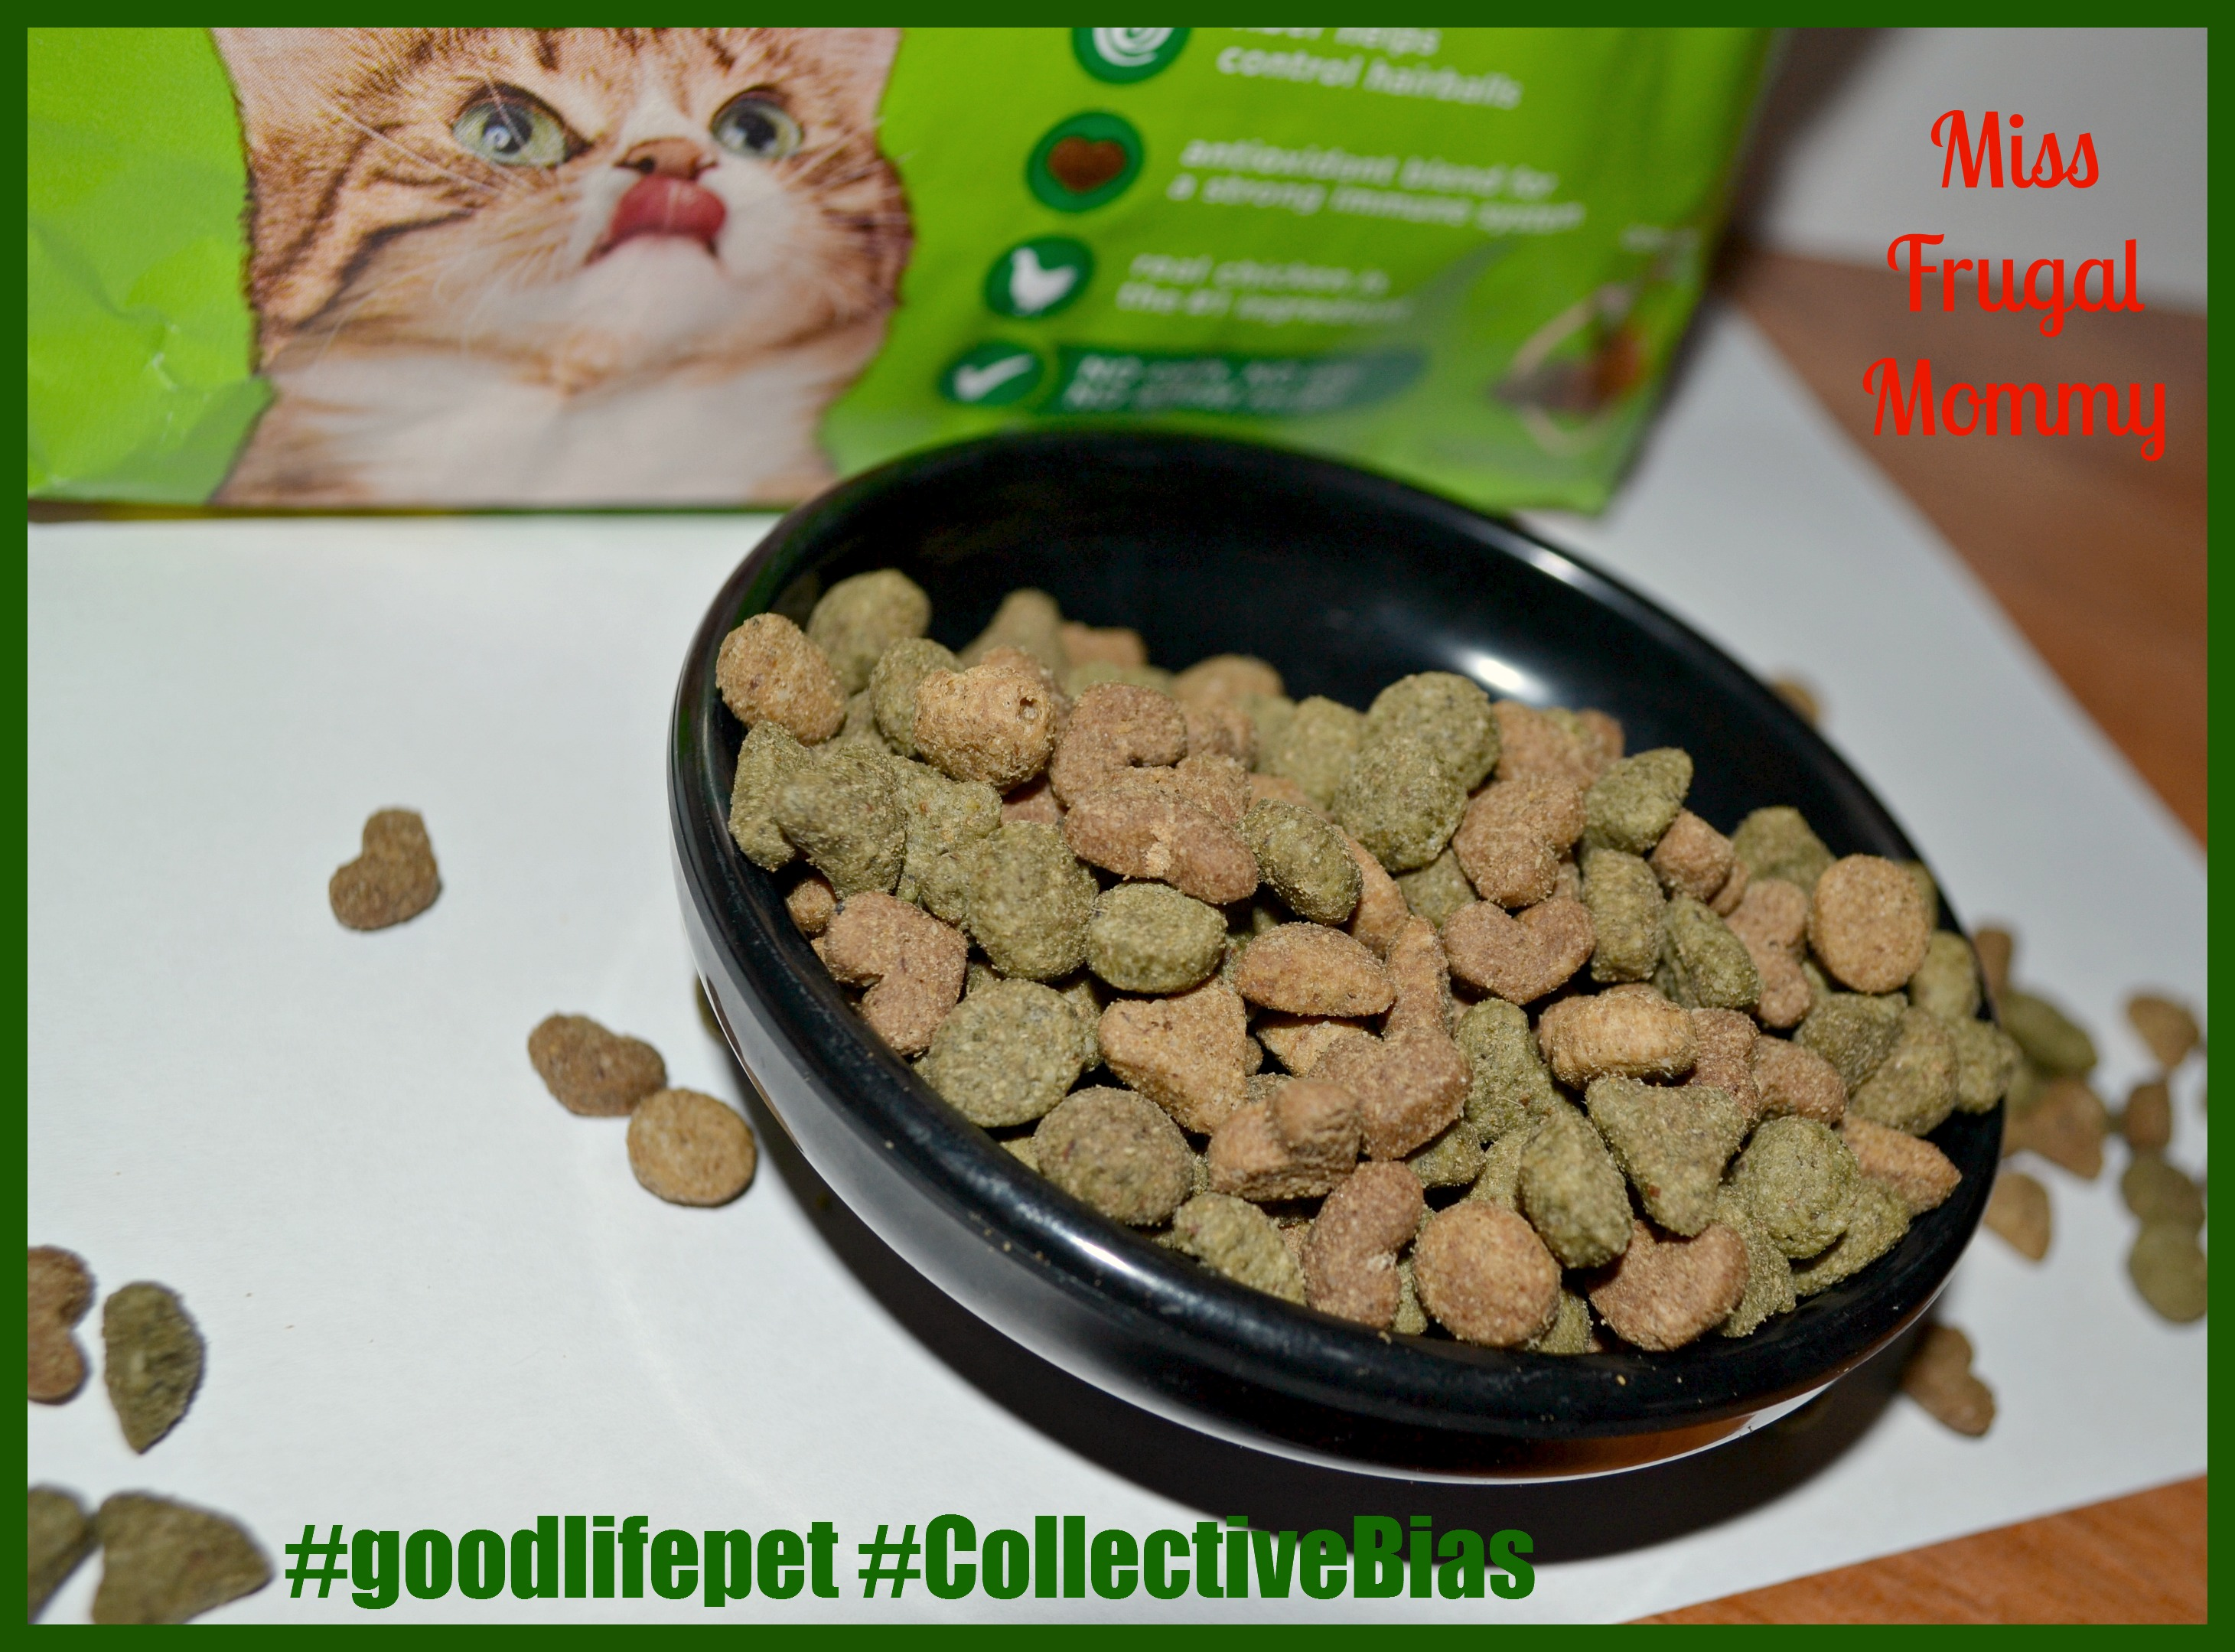 Goodlife Dry Cat Food #goodlifepet #CollectiveBias #Shop